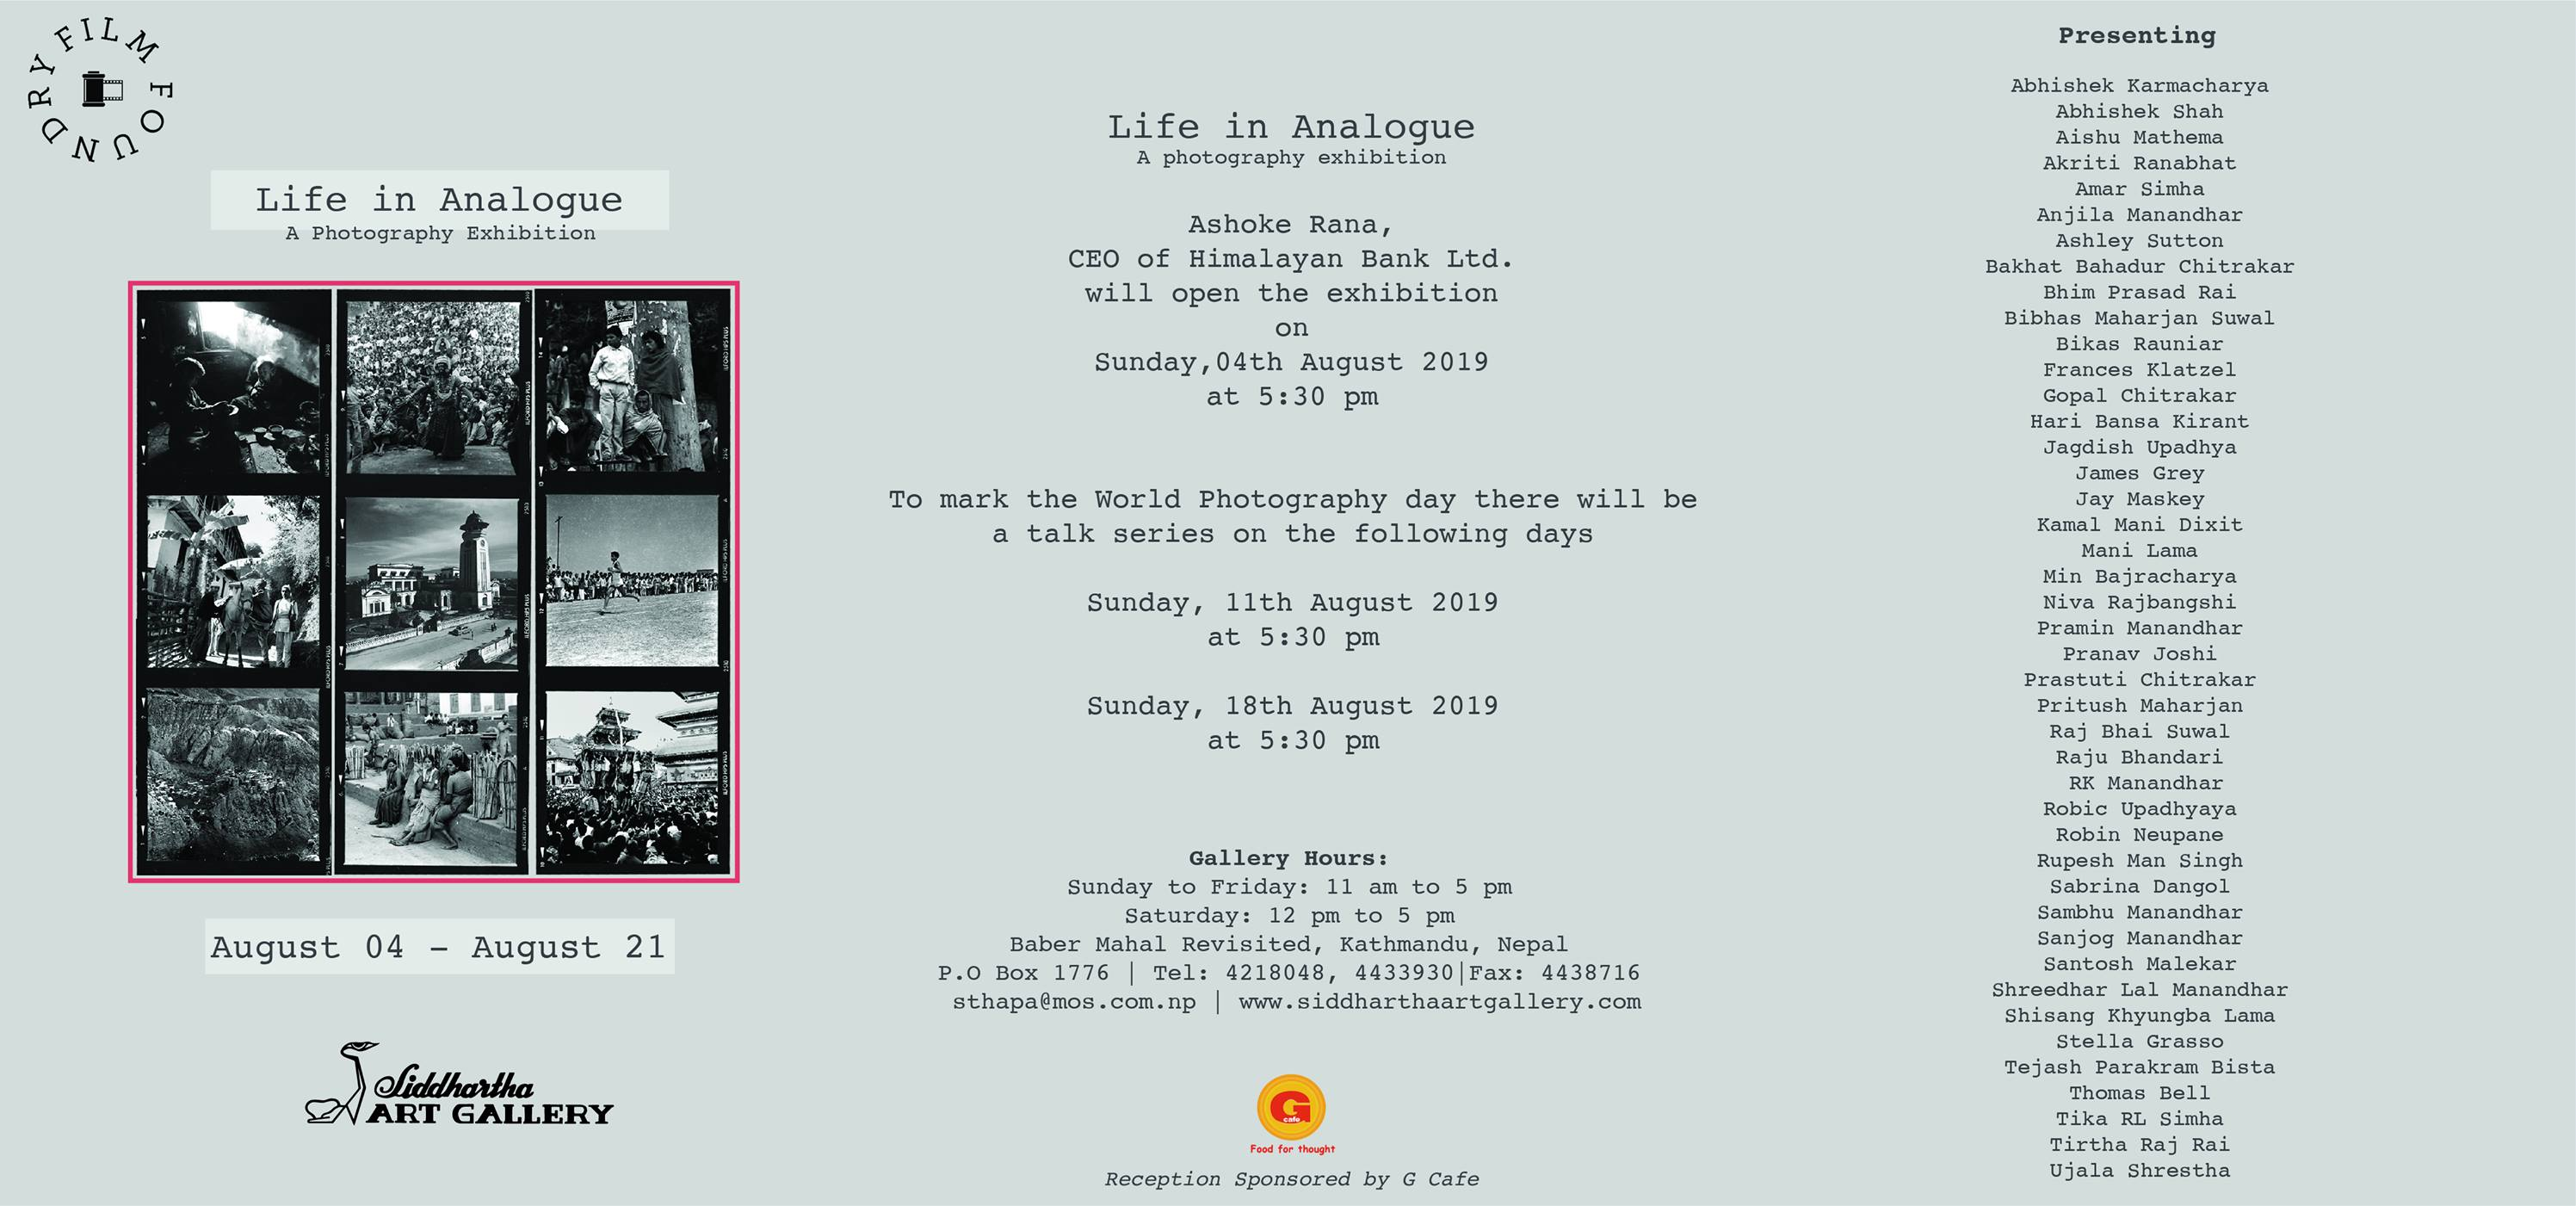 Life in Analogue: A Photography Exhibition